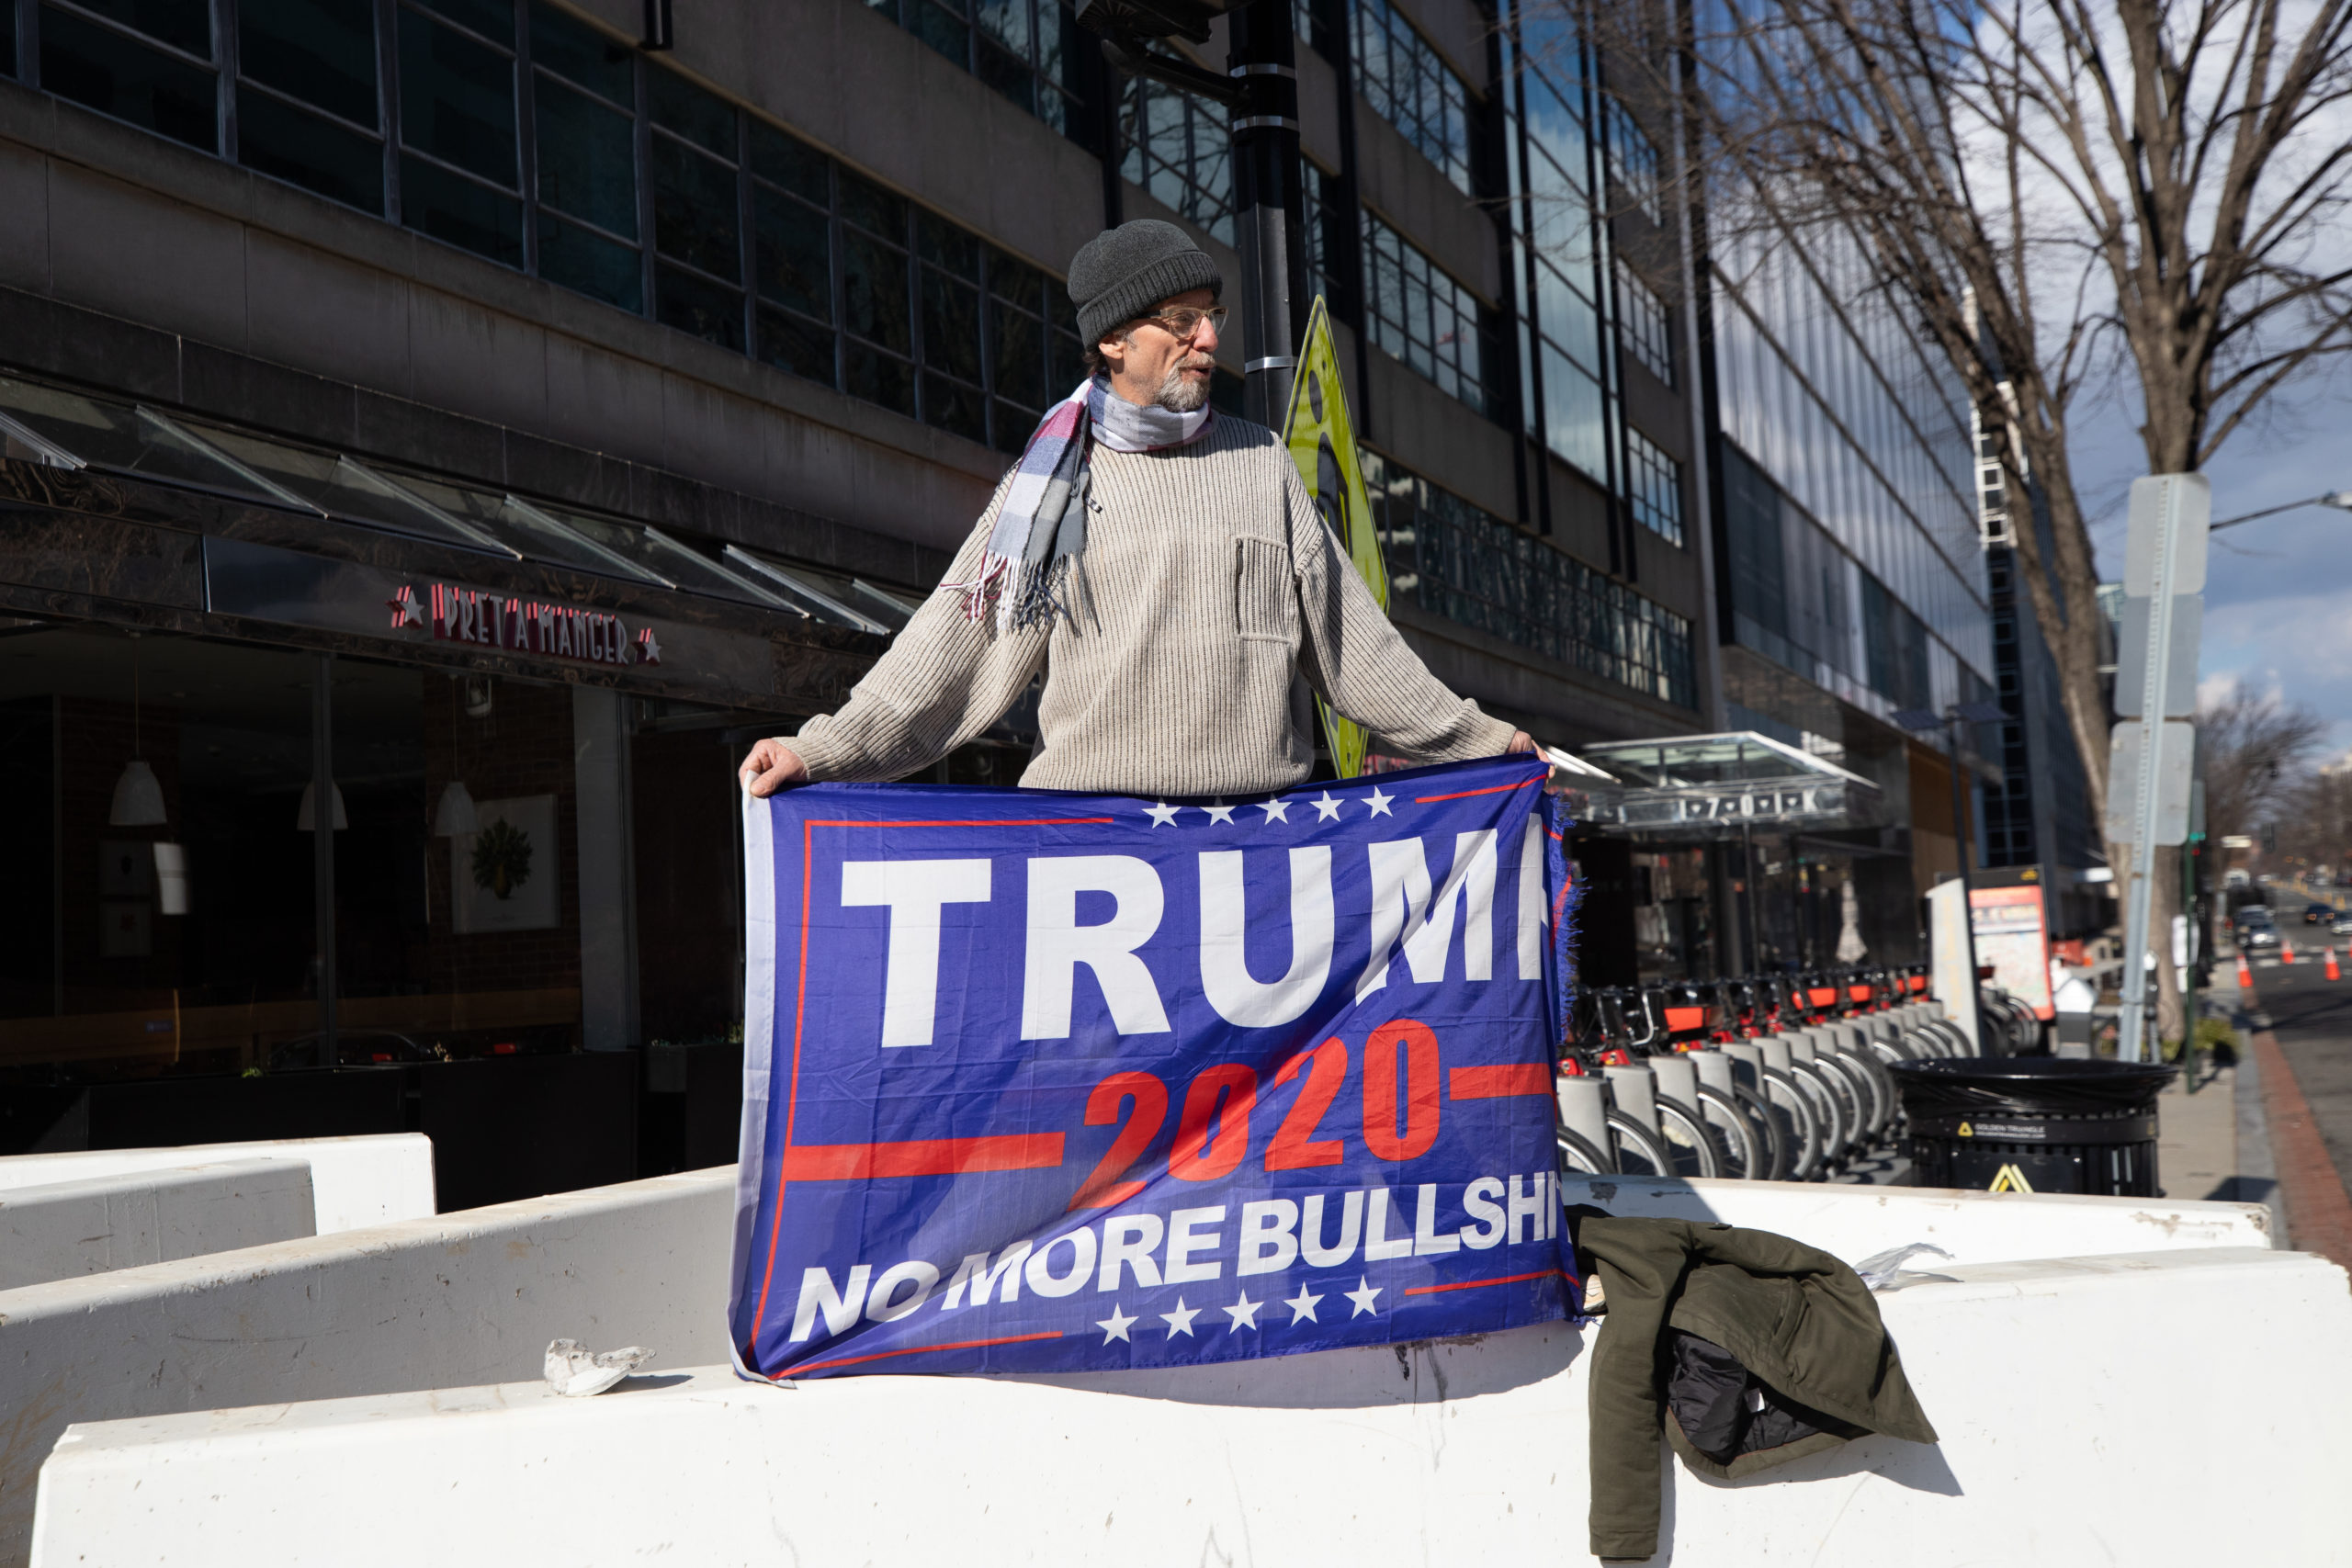 A man named Monty held a Trump flag while standing on a concrete barrier near Black Lives Matter Plaza in Washington, D.C. on Jan. 20, 2021. (Kaylee Greenlee - Daily Caller News Foundation)